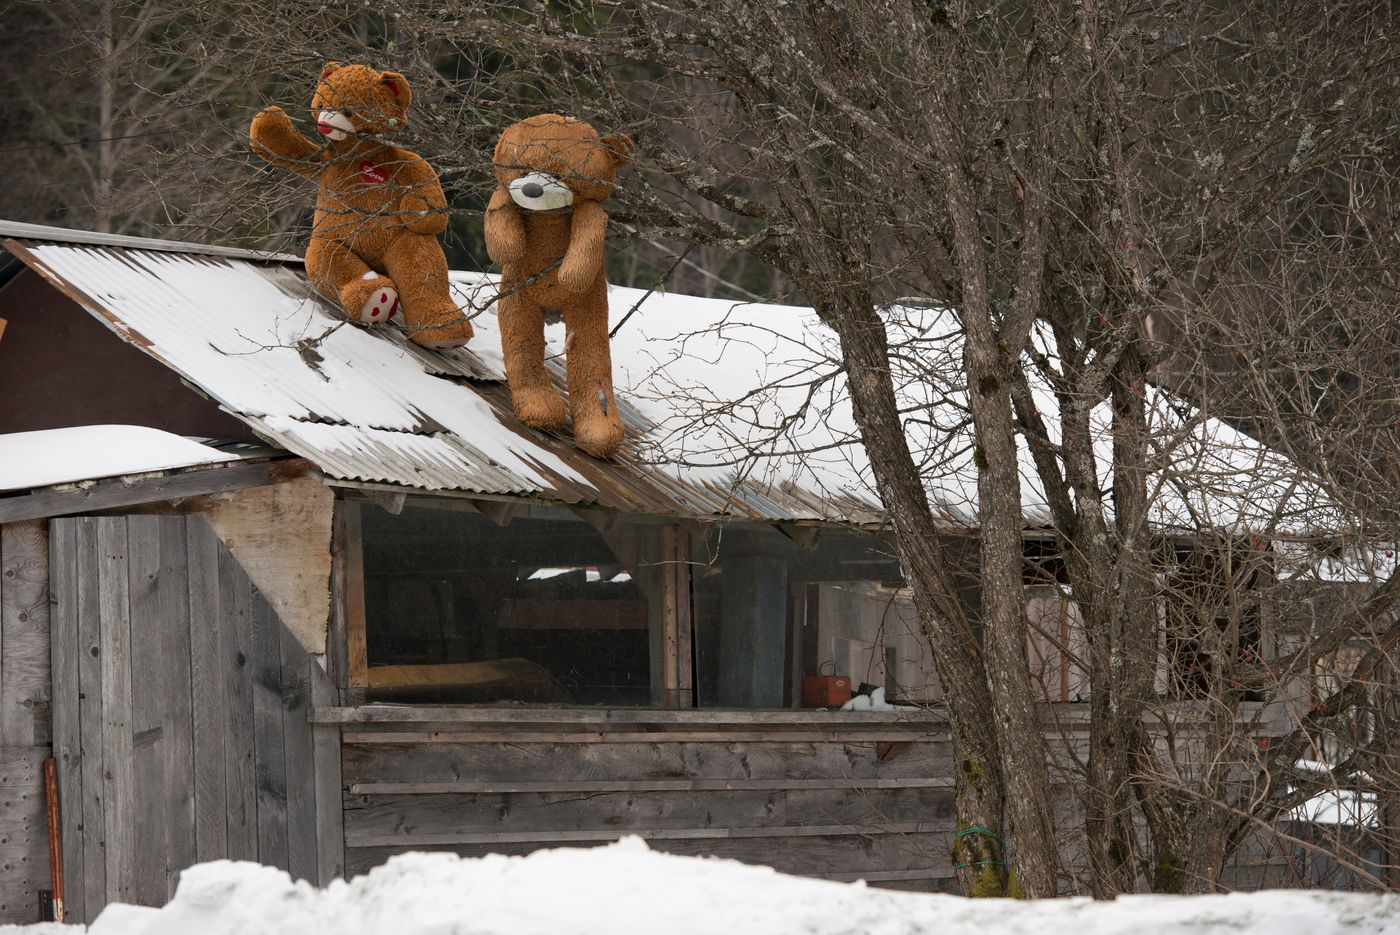 Large stuffed bears decorate a rooftop in Haines on January 22, 2017. (Marc Lester / Alaska Dispatch News)